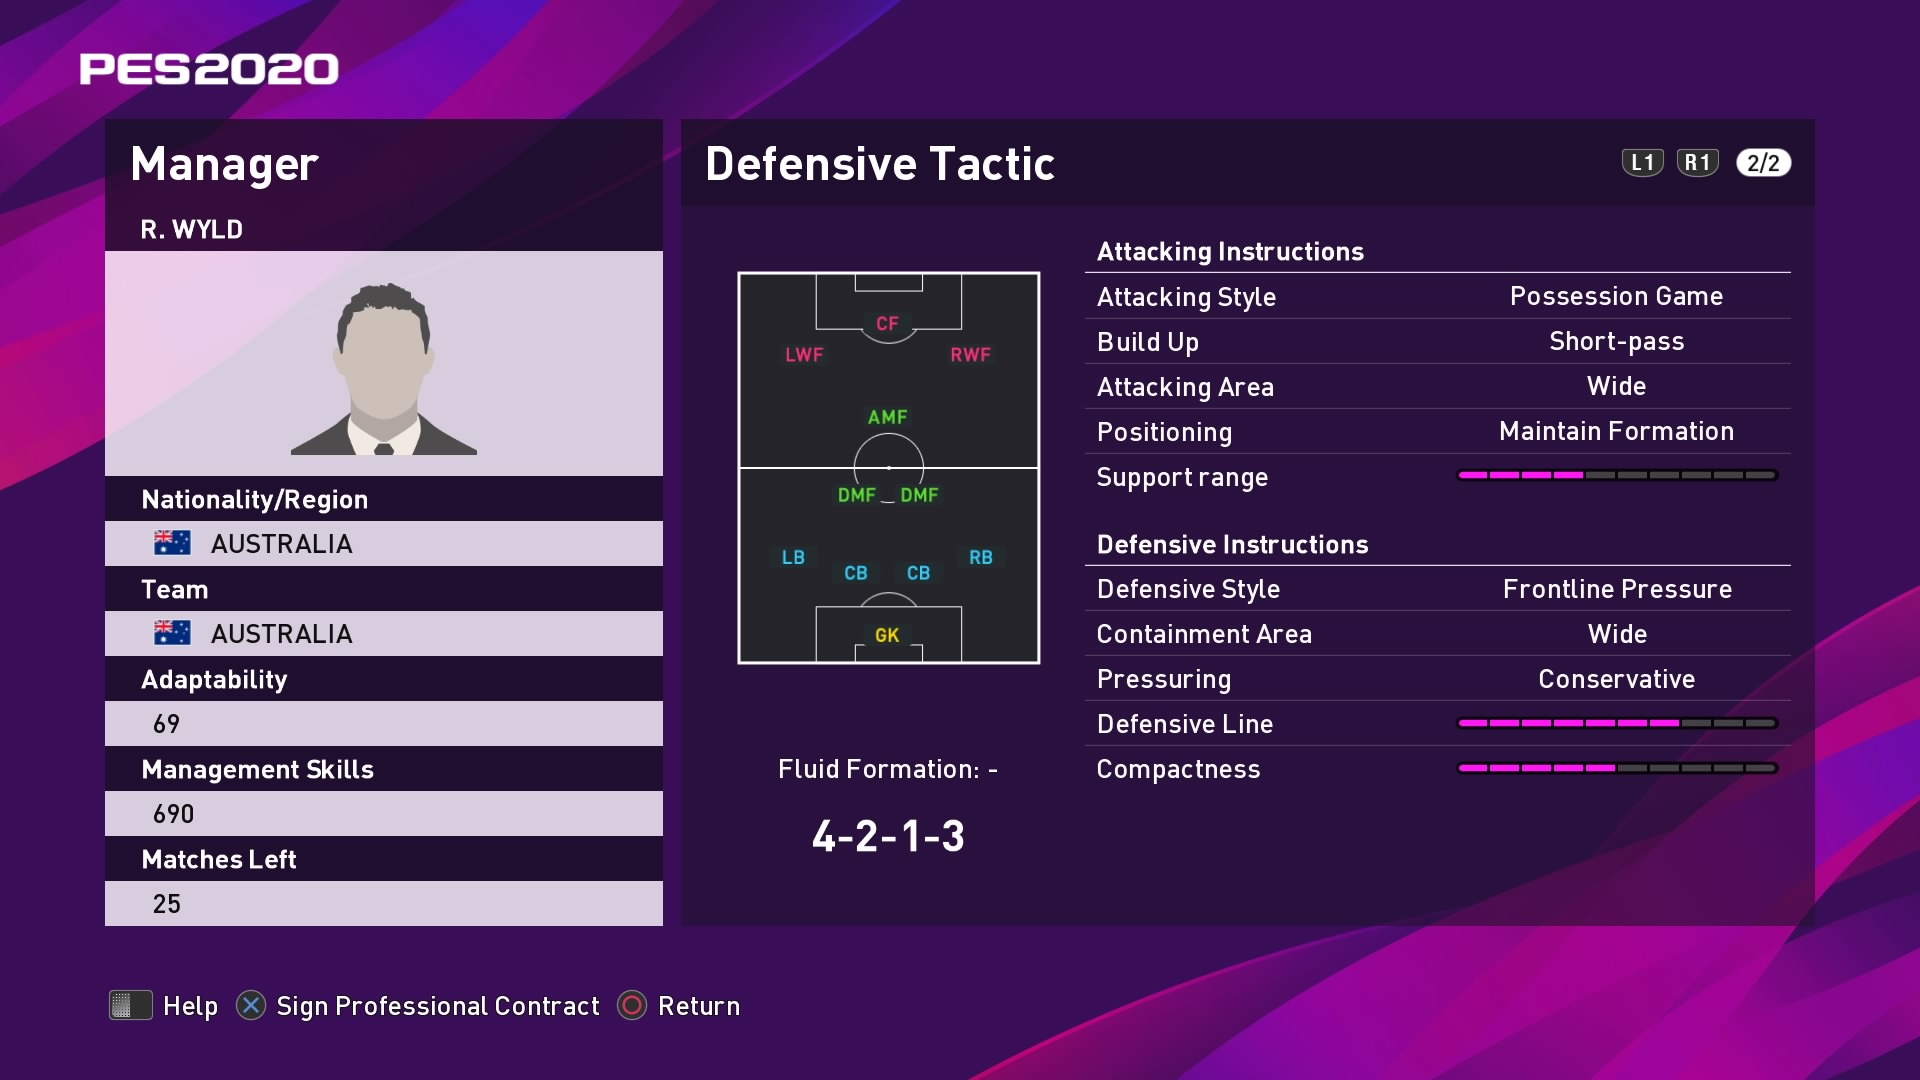 R. Wyld (Graham Arnold) Defensive Tactic in PES 2020 myClub